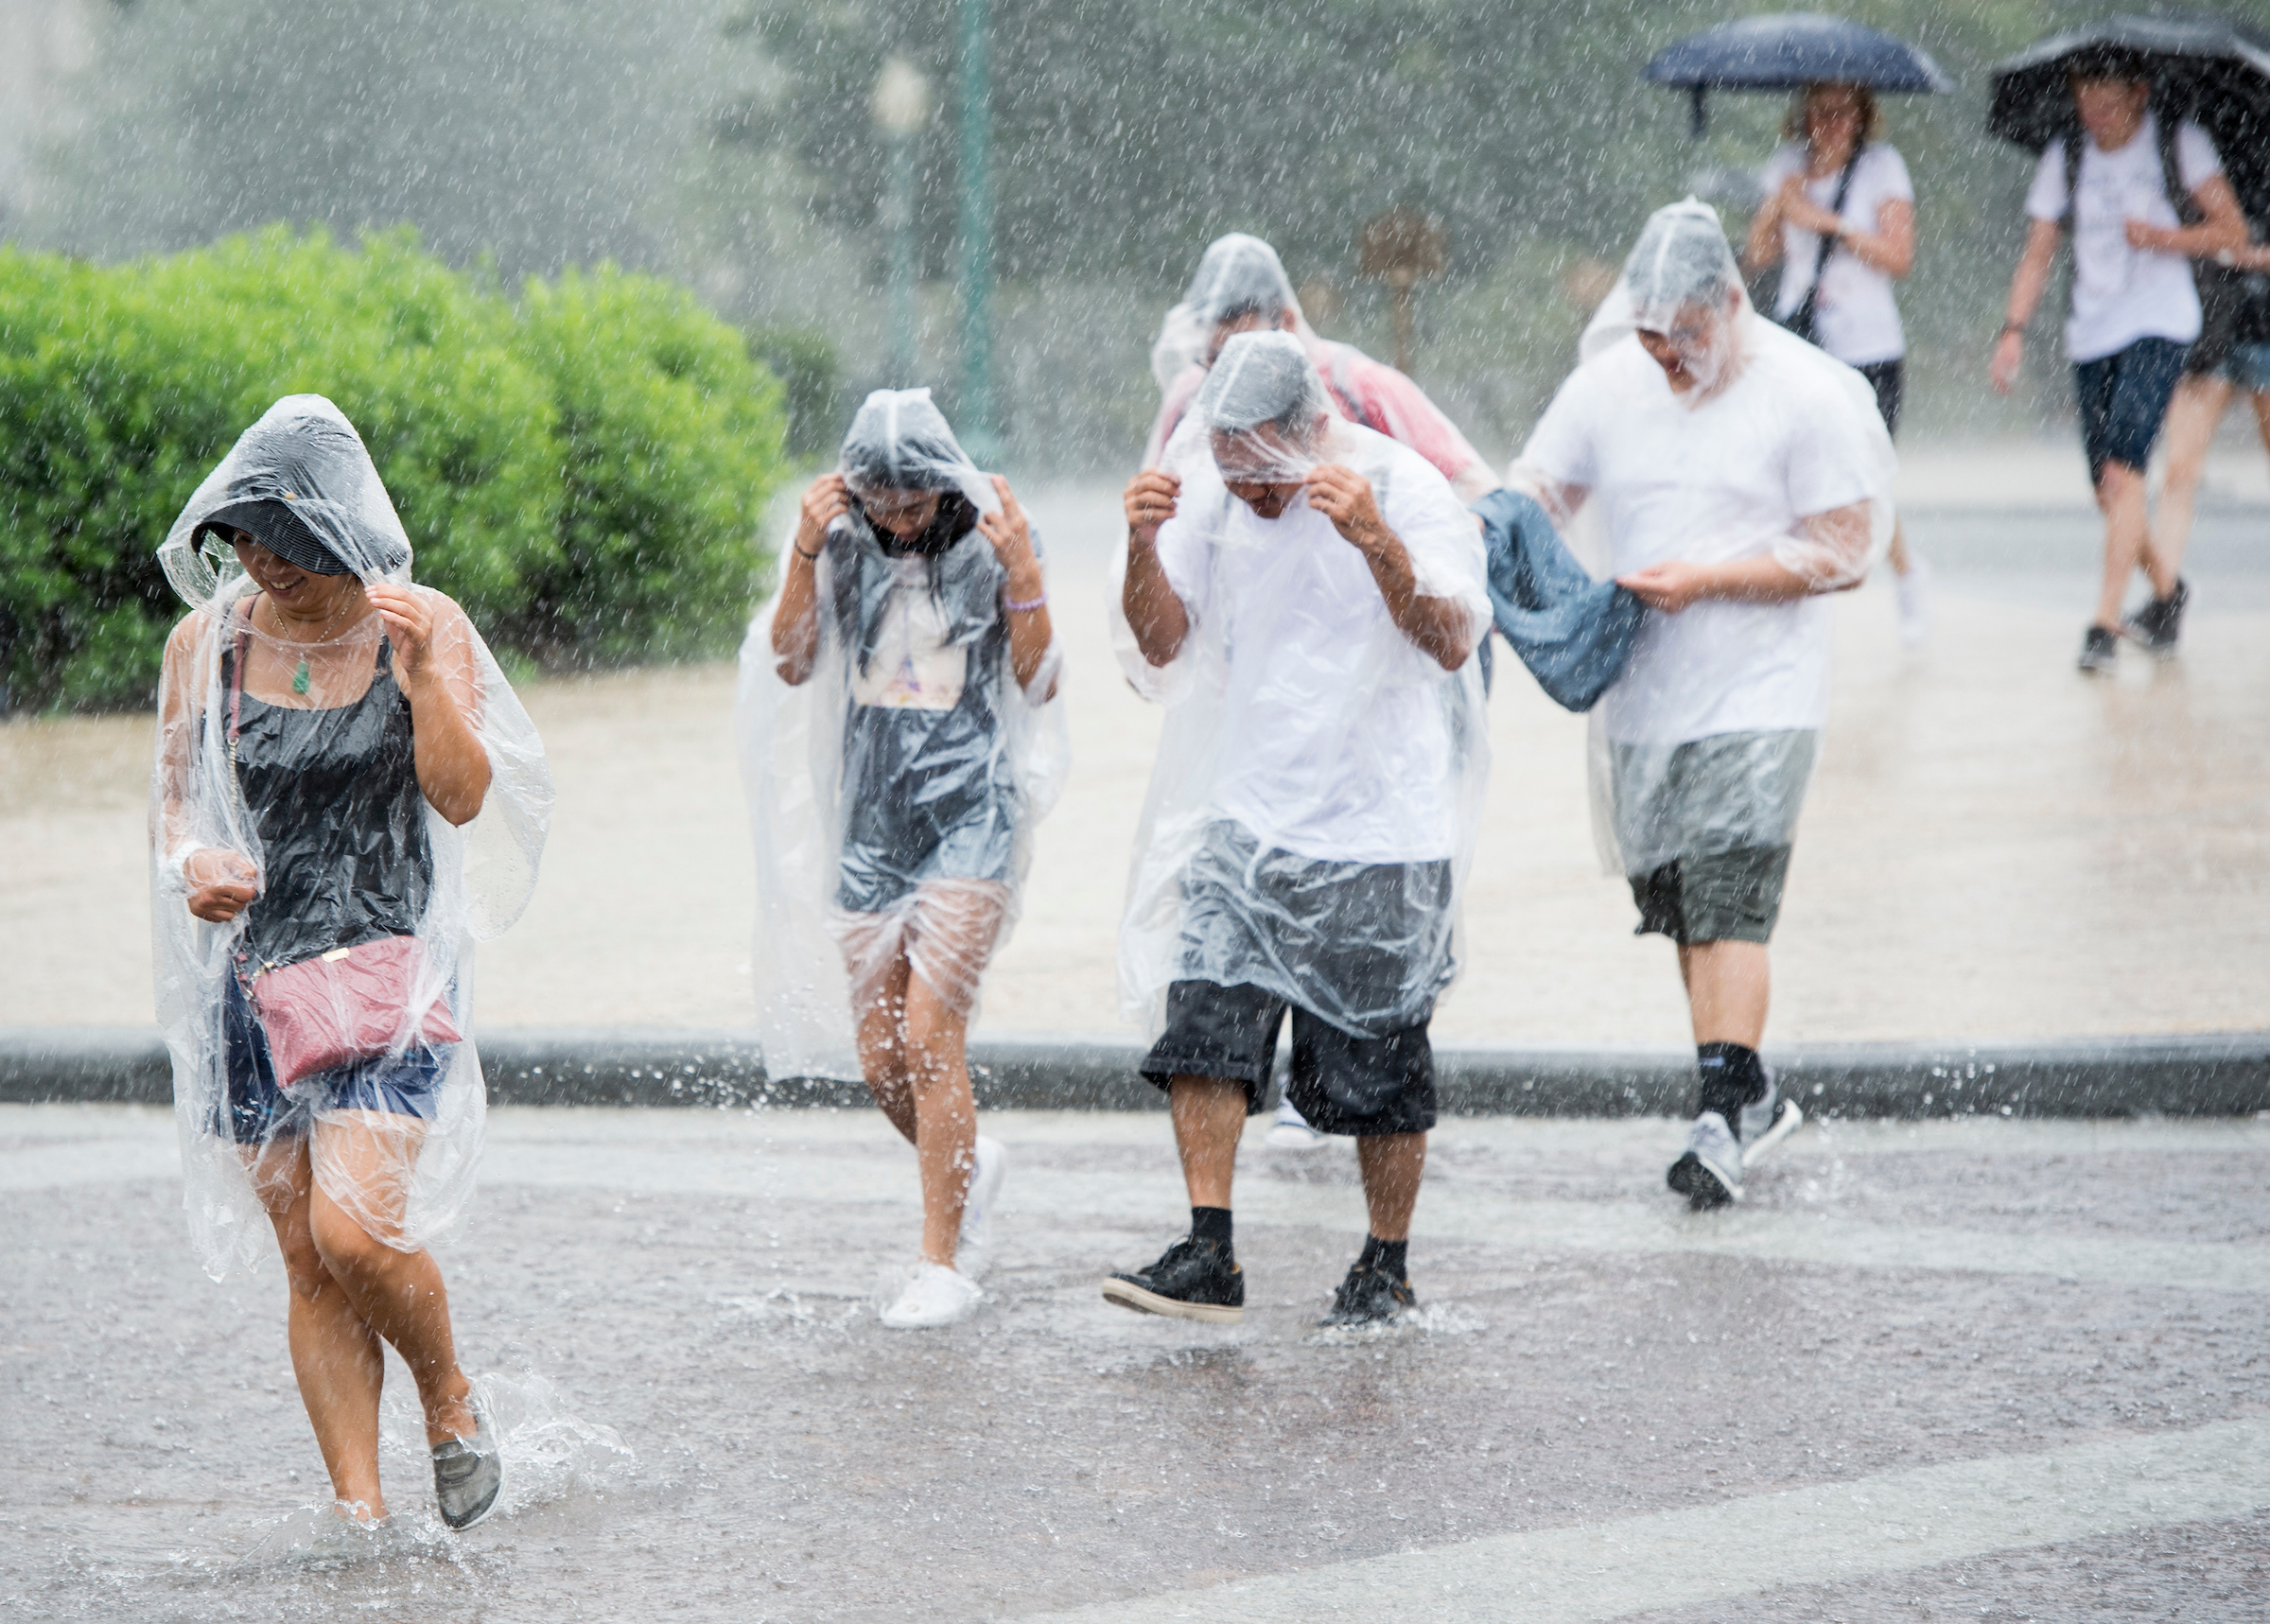 UNITED STATES - JULY 28: Tourists at the Capitol seek shelter during a torrential downpour in Washington on Friday, July 28, 2017. (Photo By Bill Clark/CQ Roll Call)